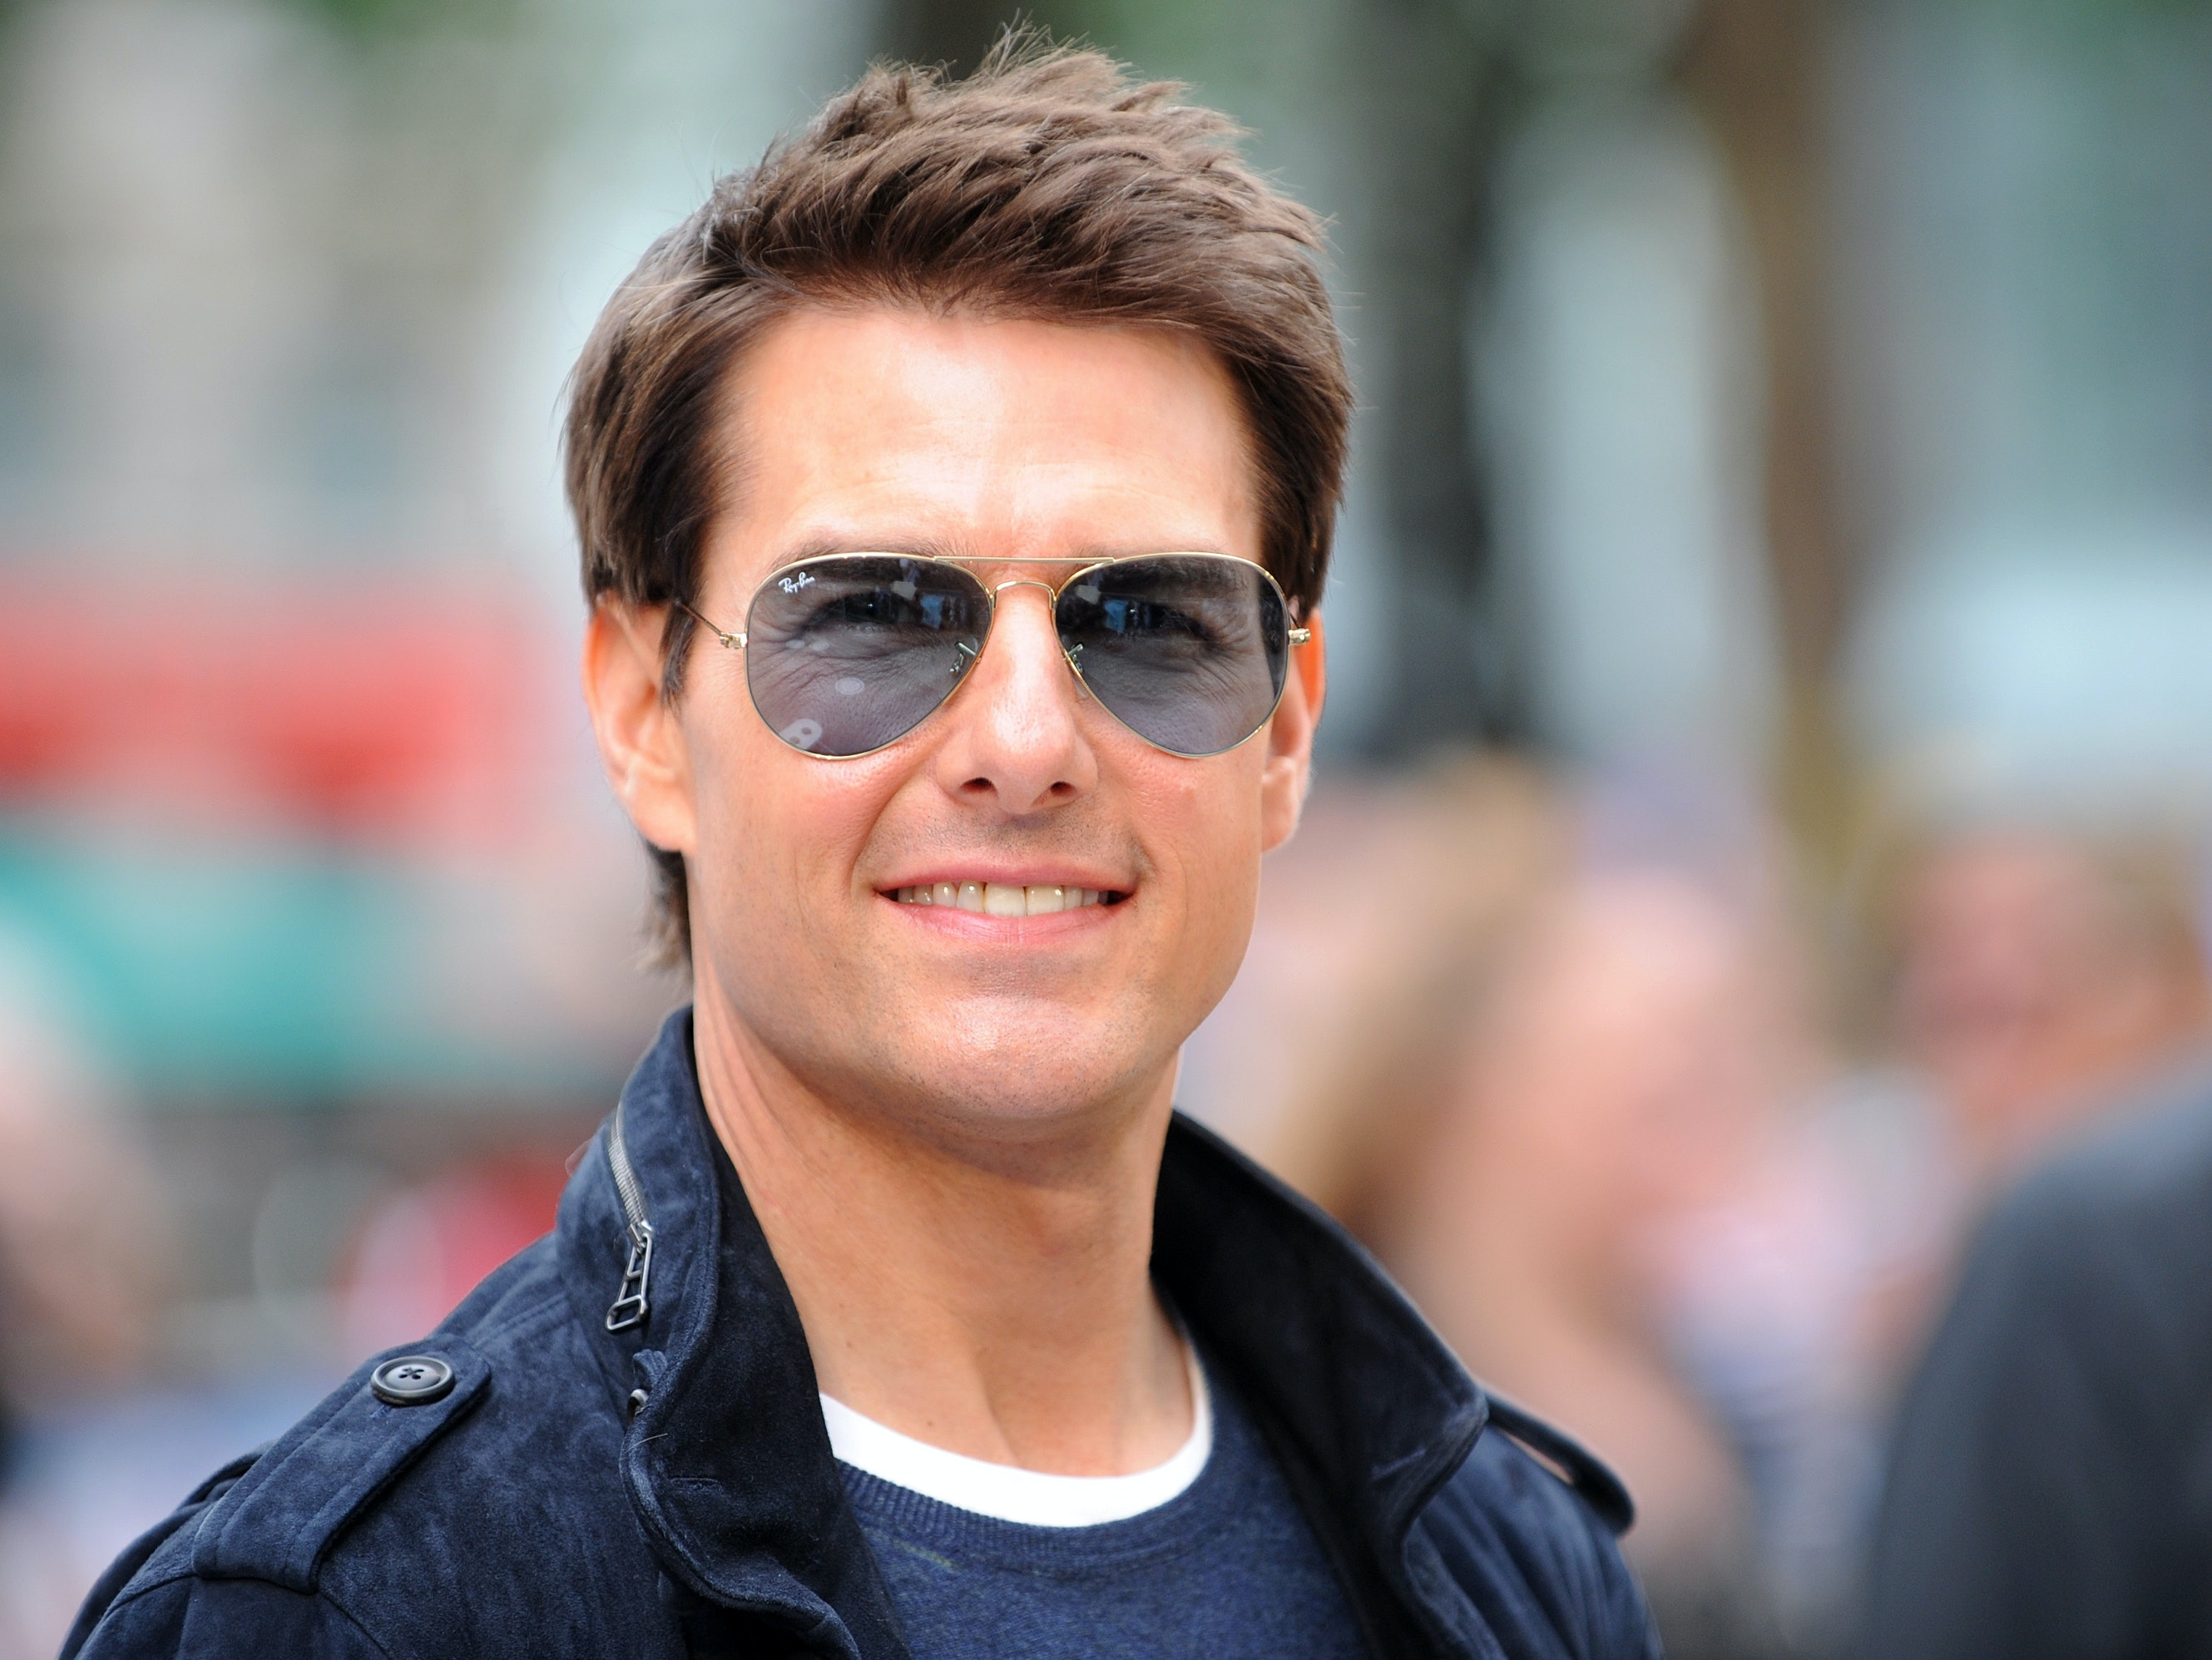 'The Mummy' Reboot With Tom Cruise Will Include ... 'Bride of Frankenstein'?